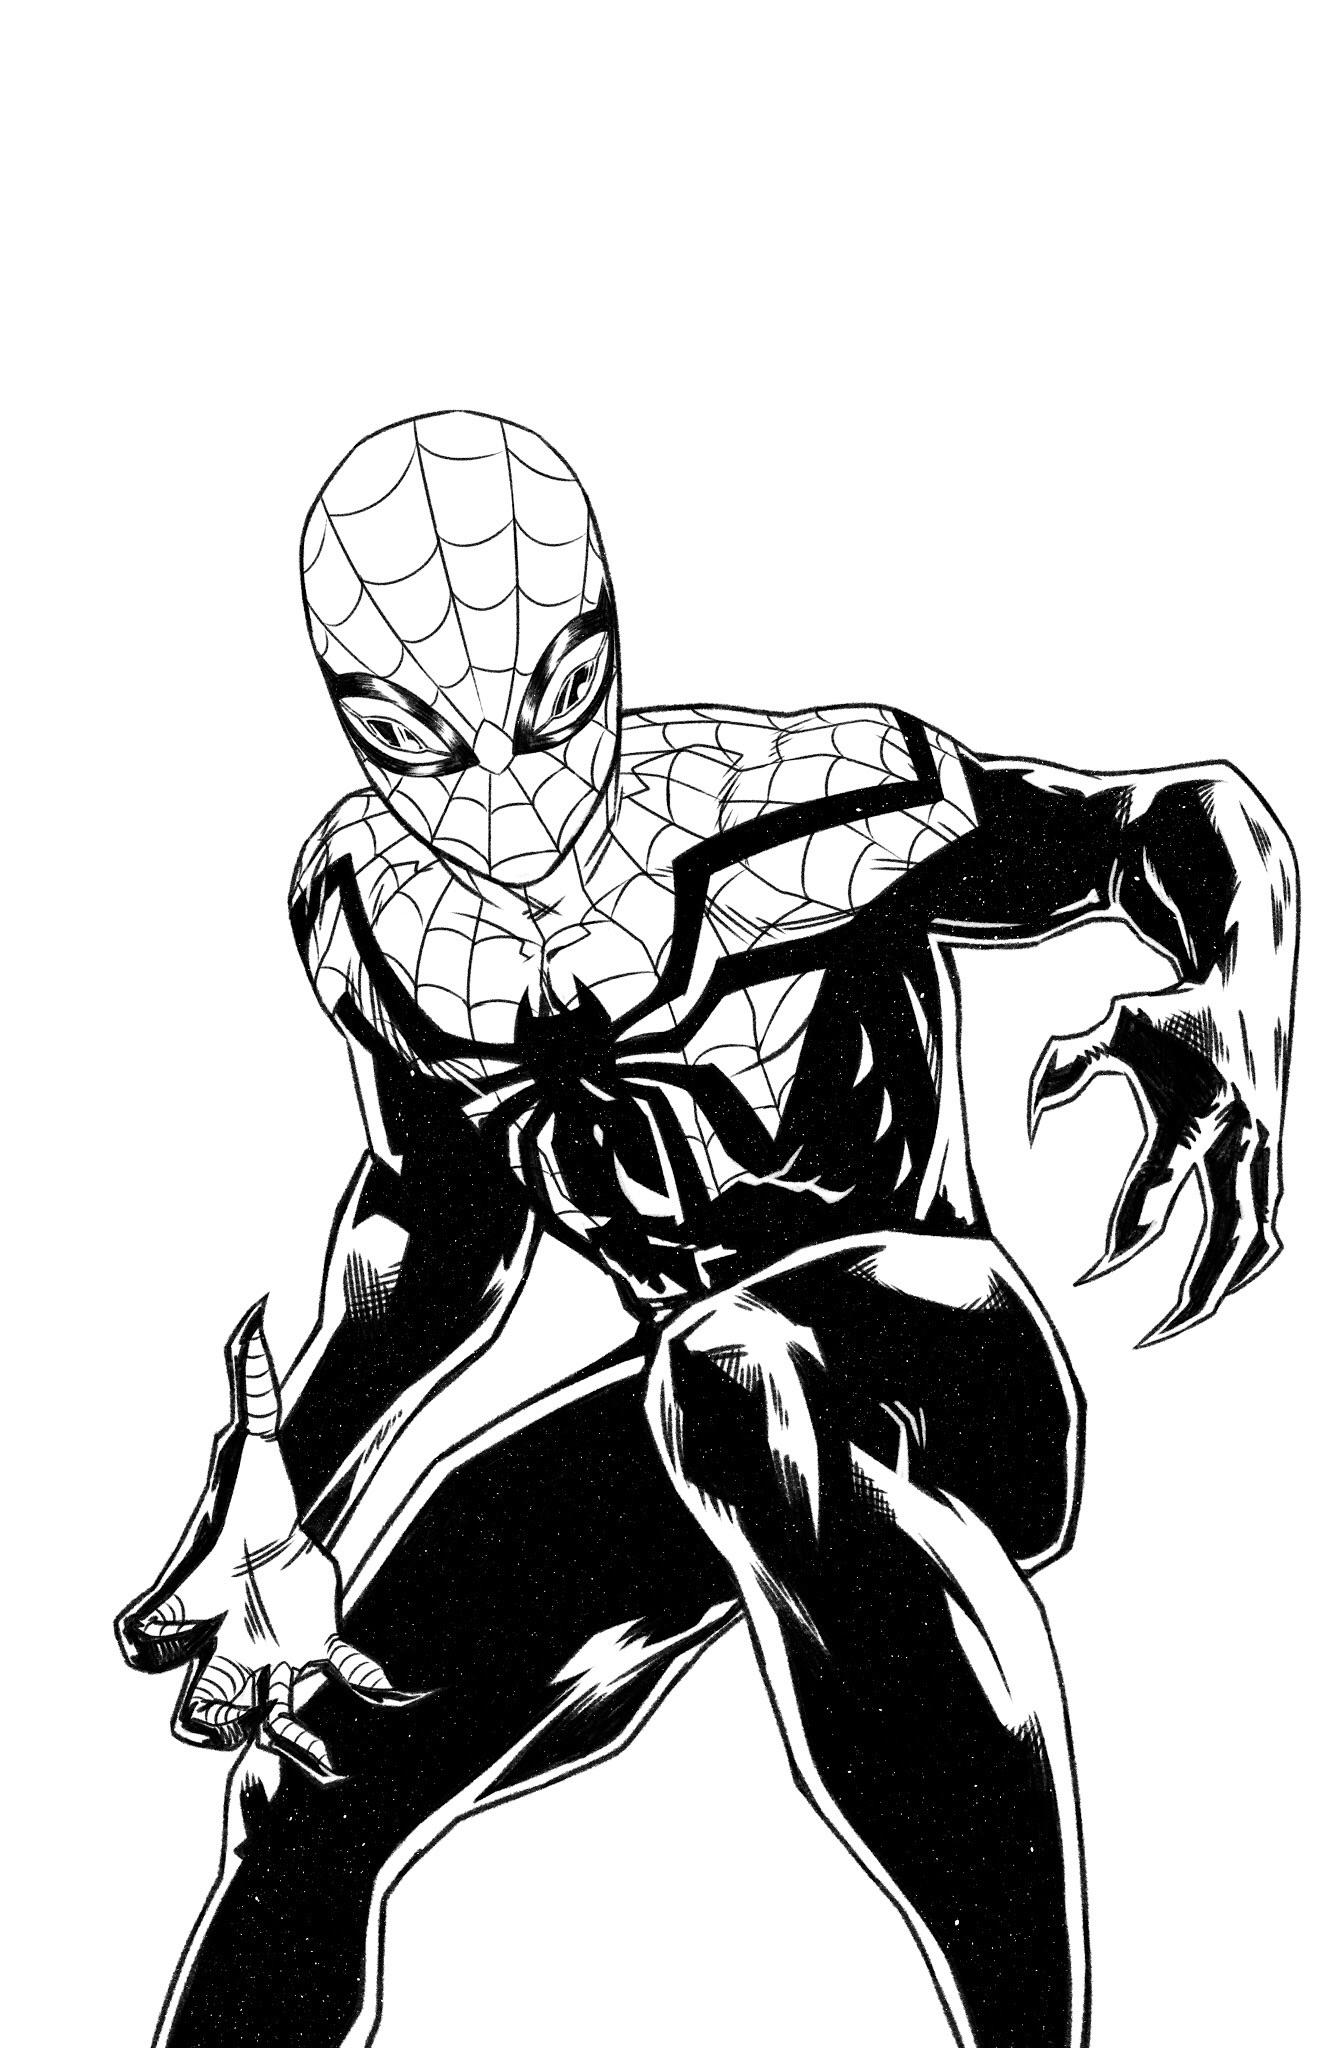 Spiderman Black Suit Drawing at GetDrawings.com | Free for ...